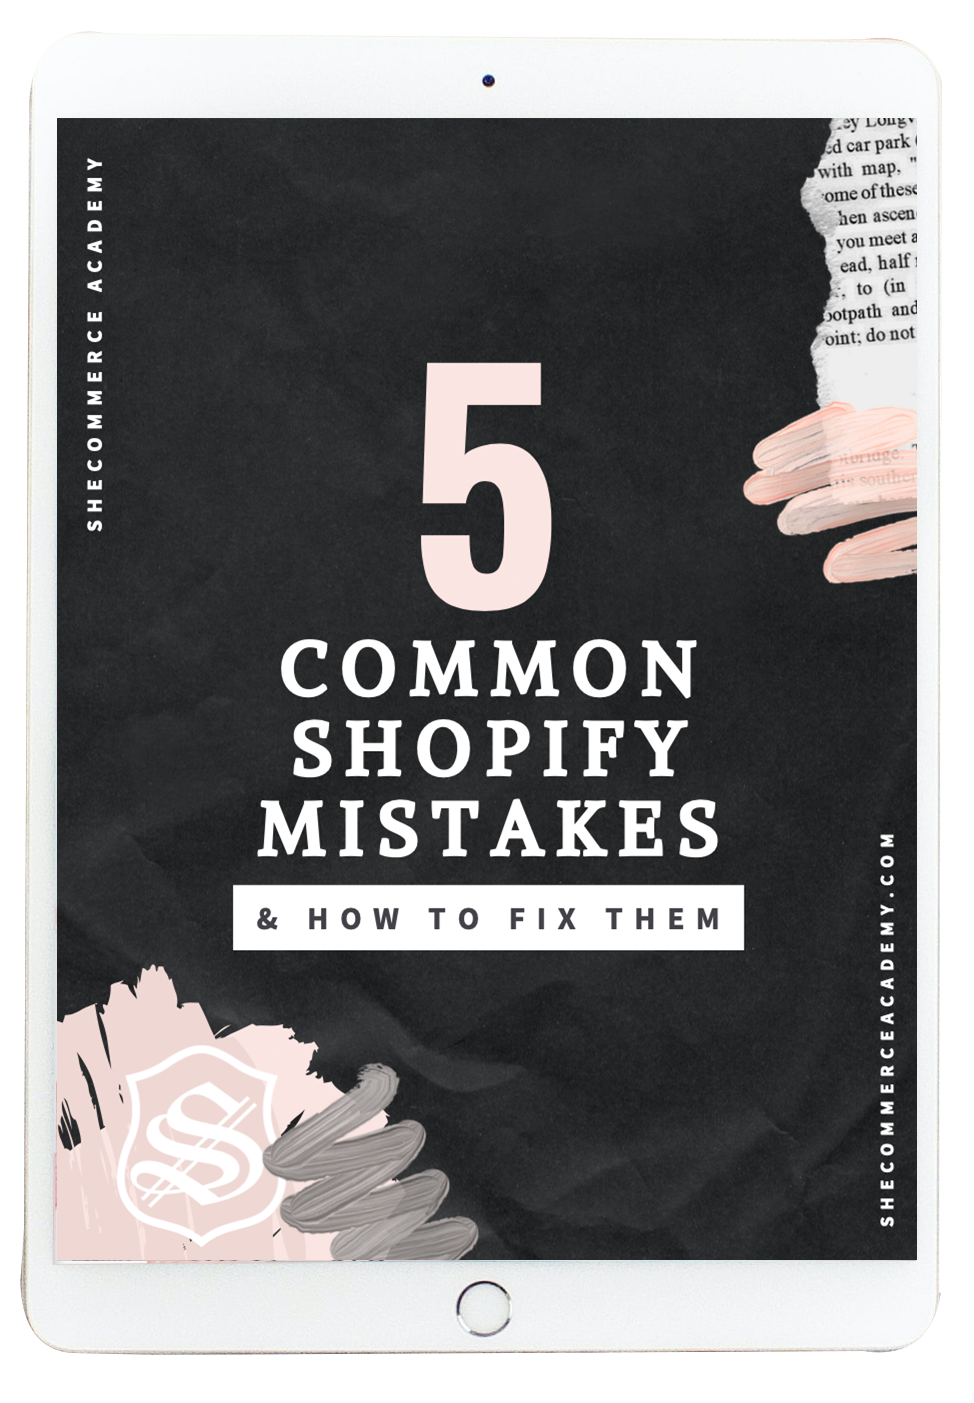 5 Common Shopify Mistakes